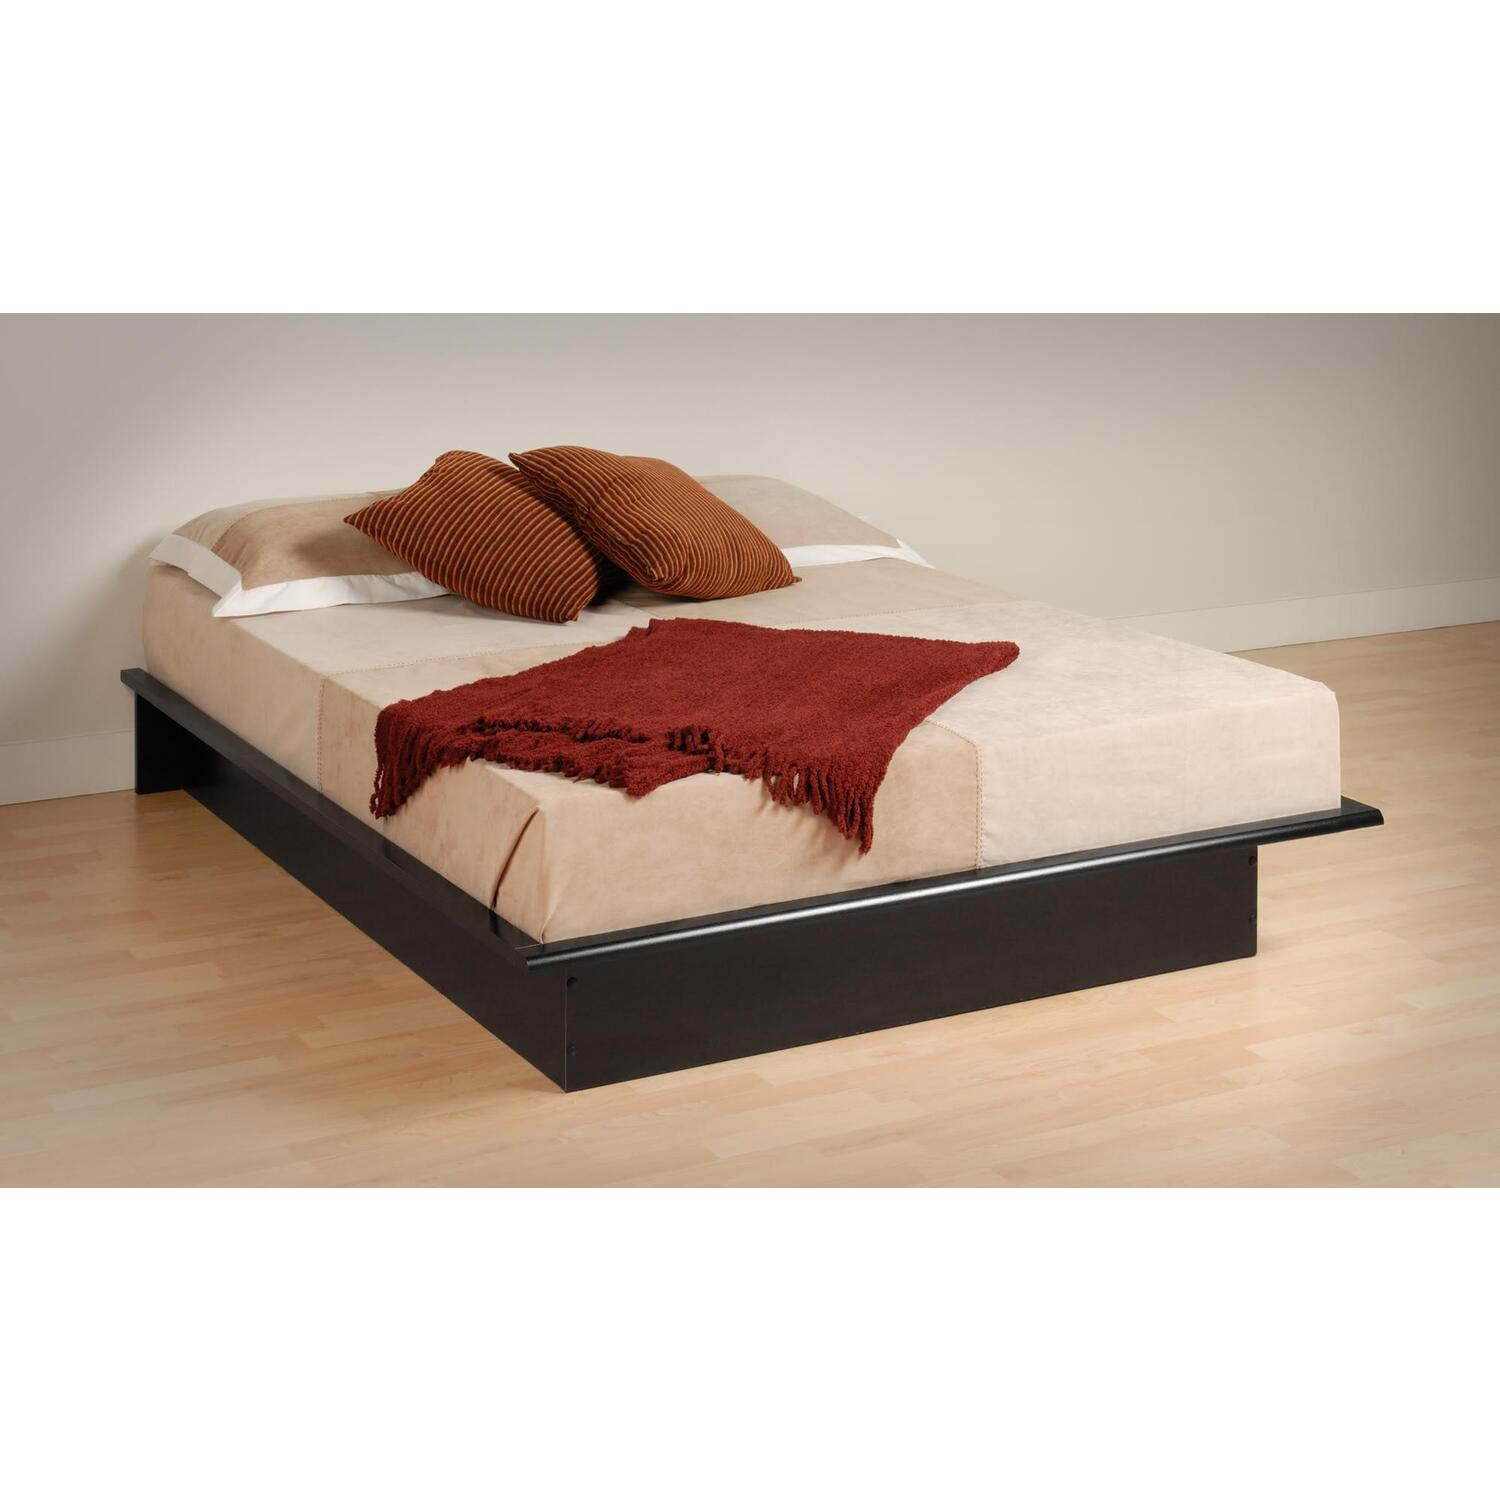 Black Sonoma Double Full Bookcase Platform Bed 400 99 Ojcommerce